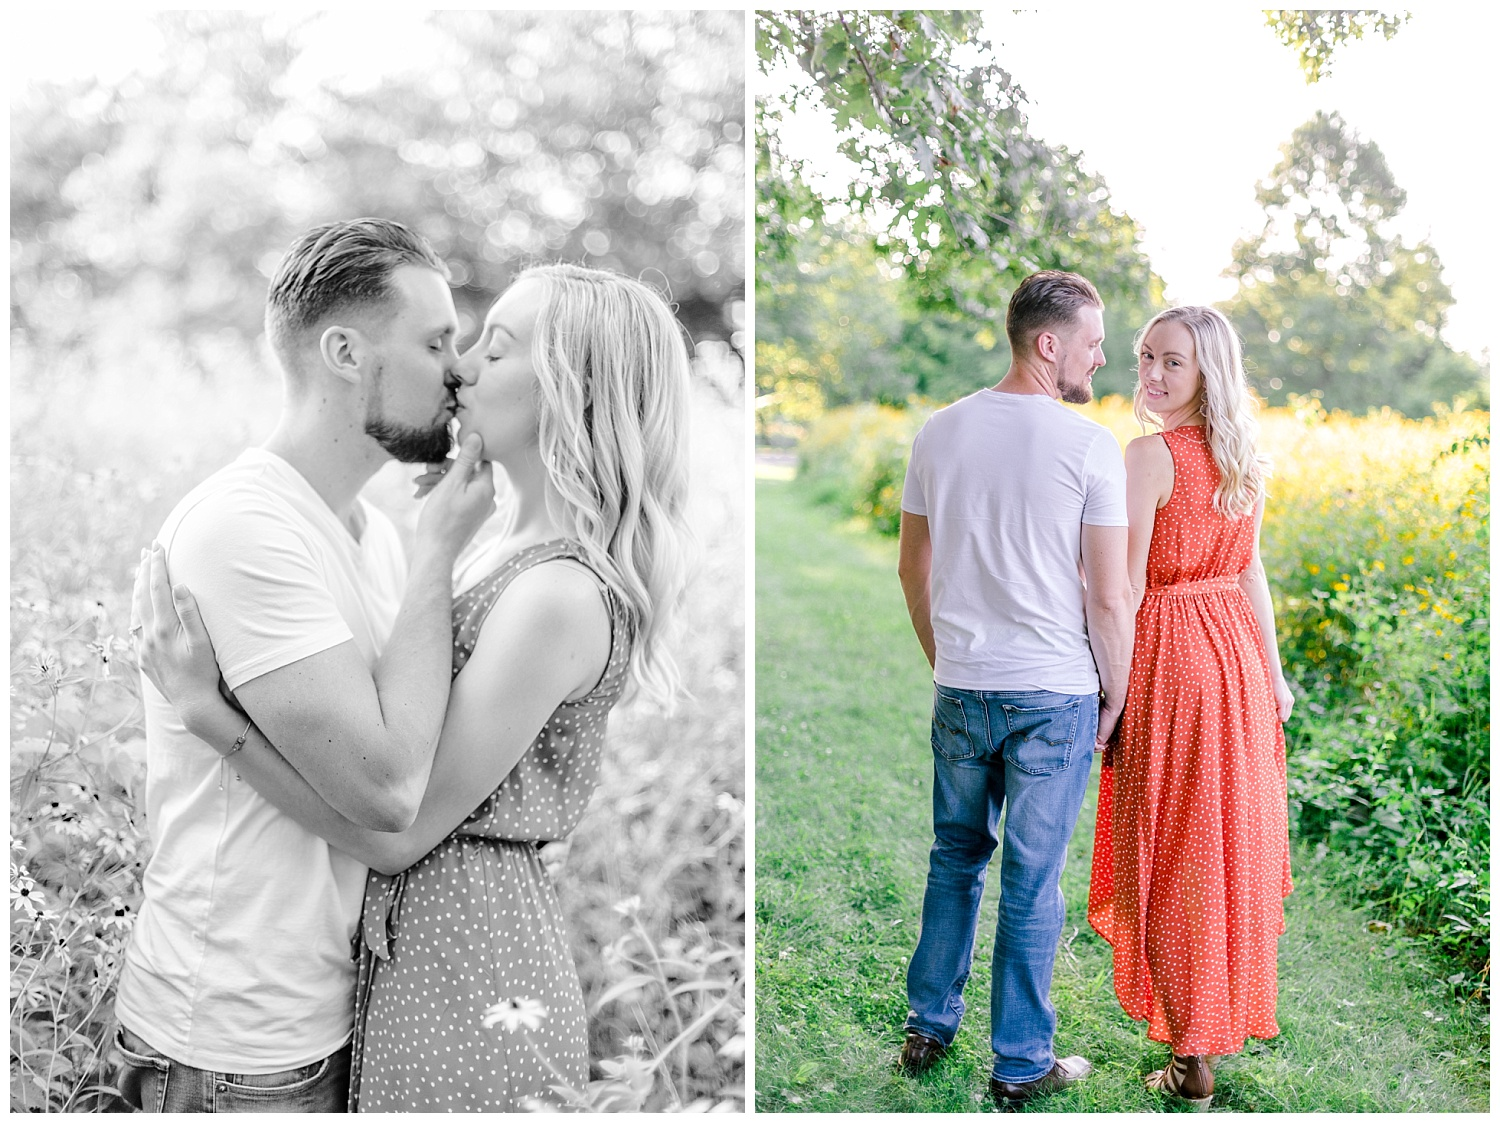 Blue Marsh Lake Reading Pennsylvania flower field golden hour engagement session by PA based wedding and lifestyle photographer Lytle photography_0011.jpg